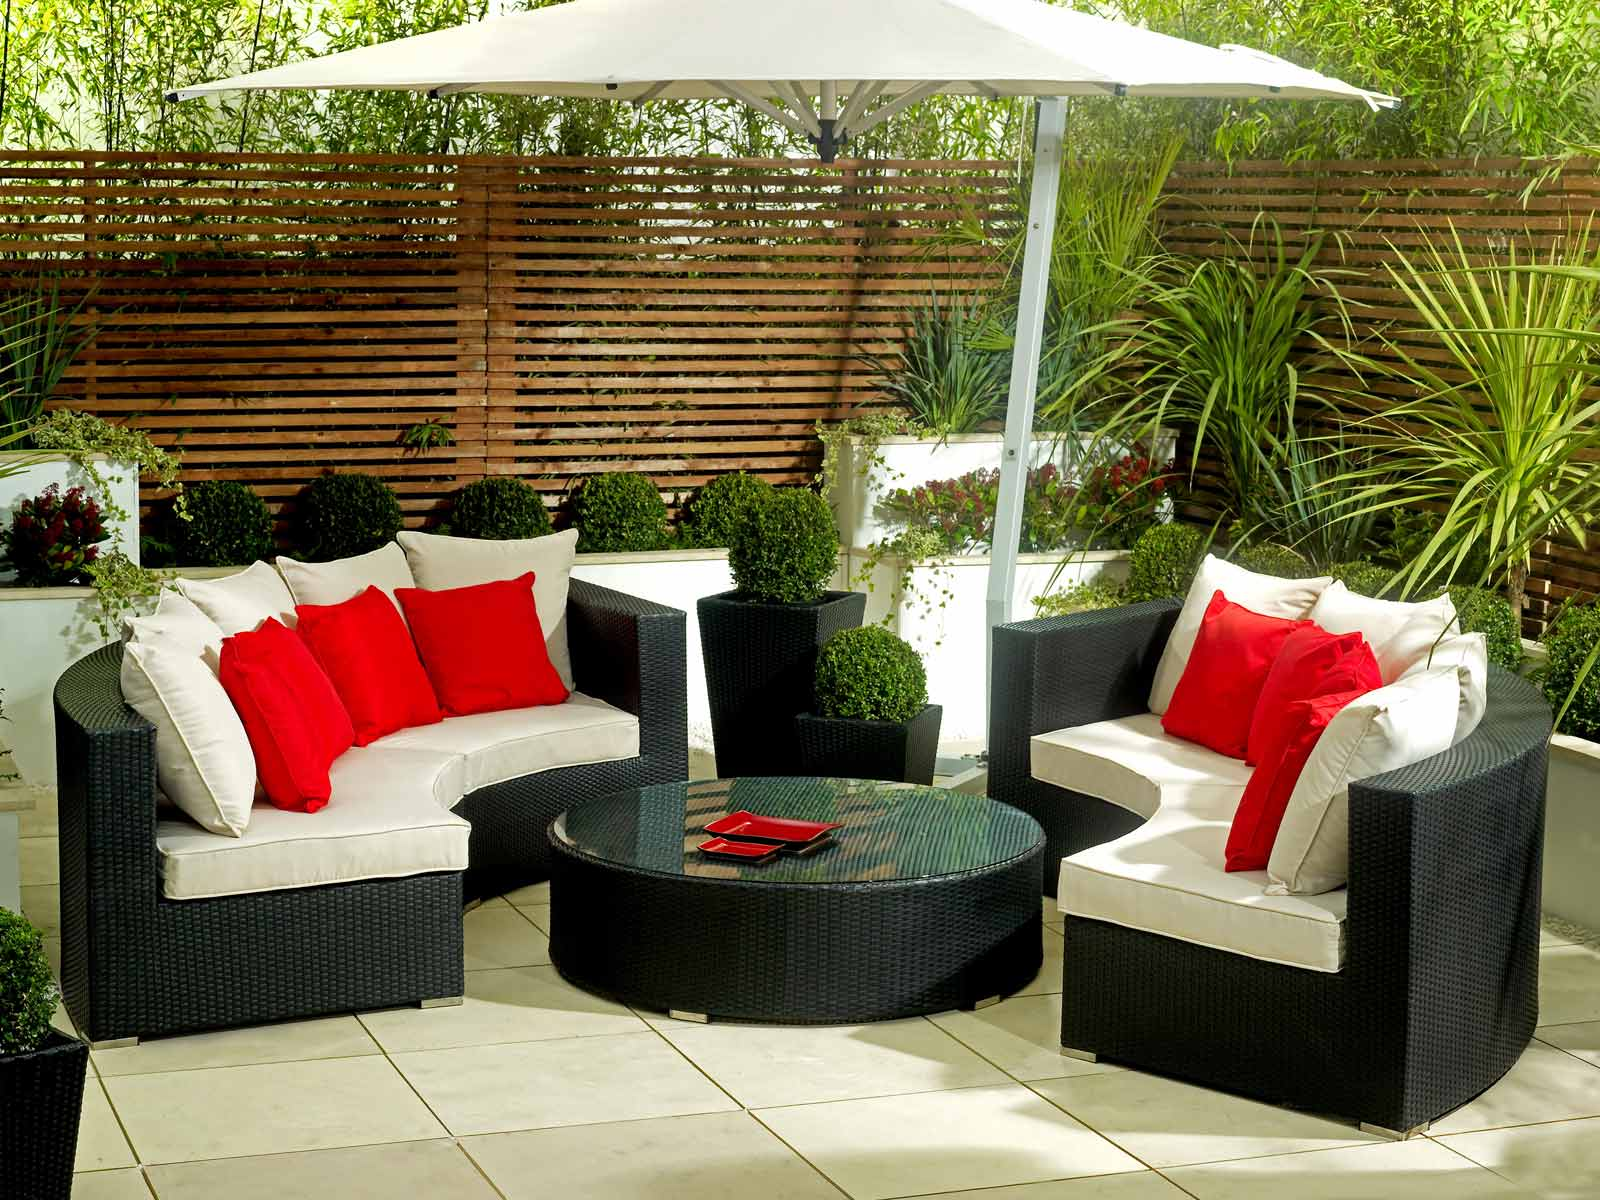 Furniture store sweet home furniture stores for Outdoor home accessories